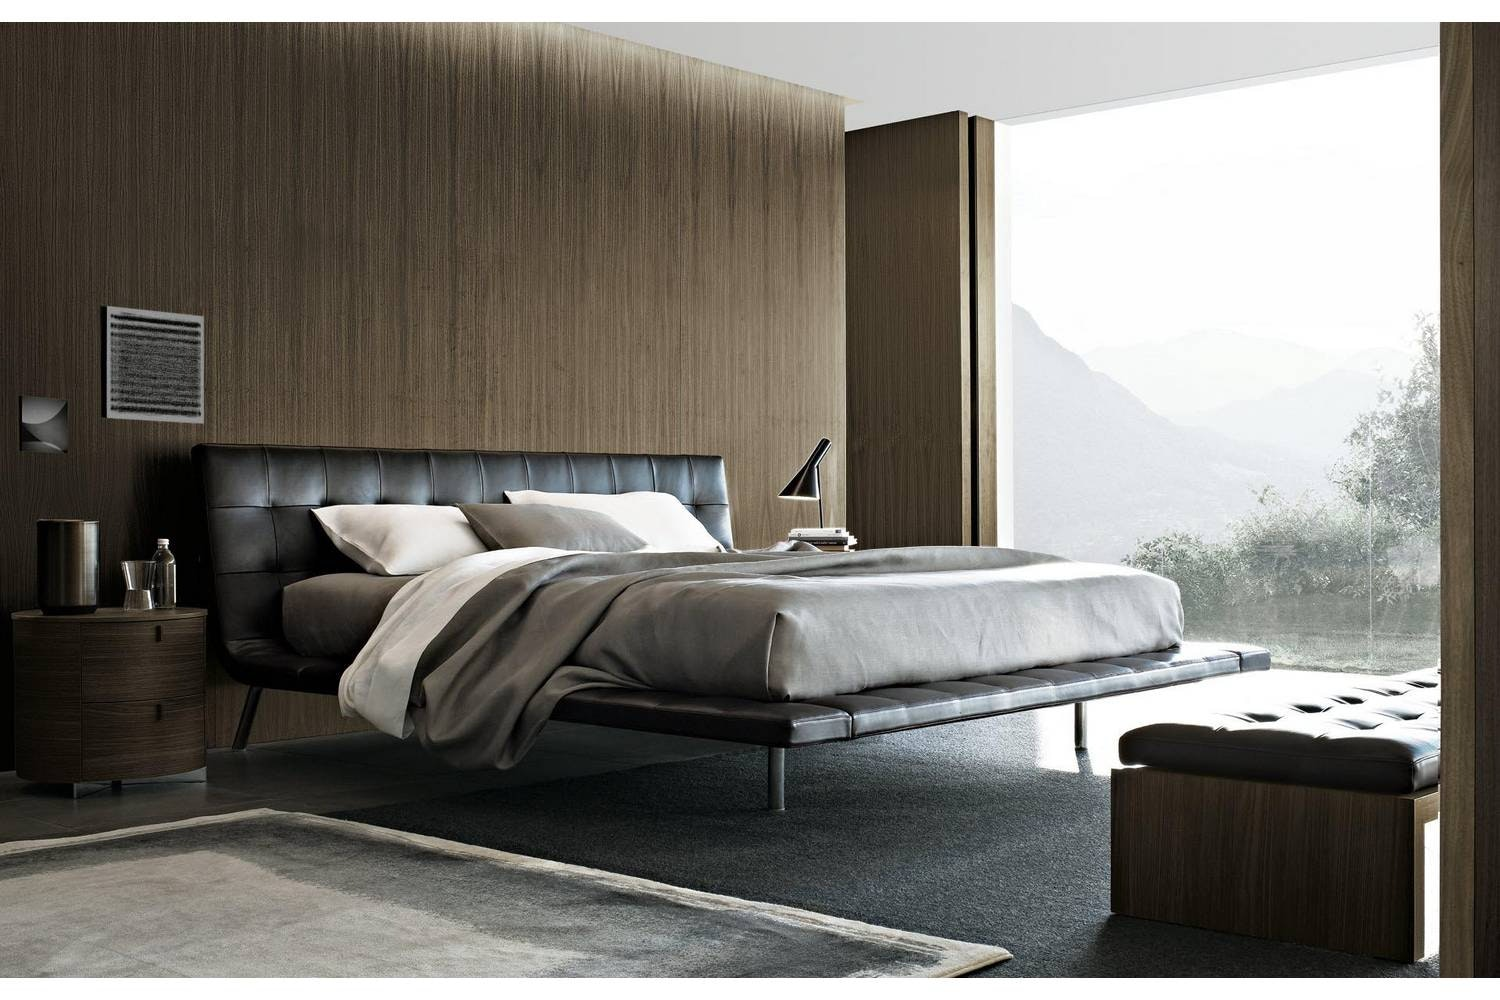 Onda Bed by Paolo Piva for Poliform